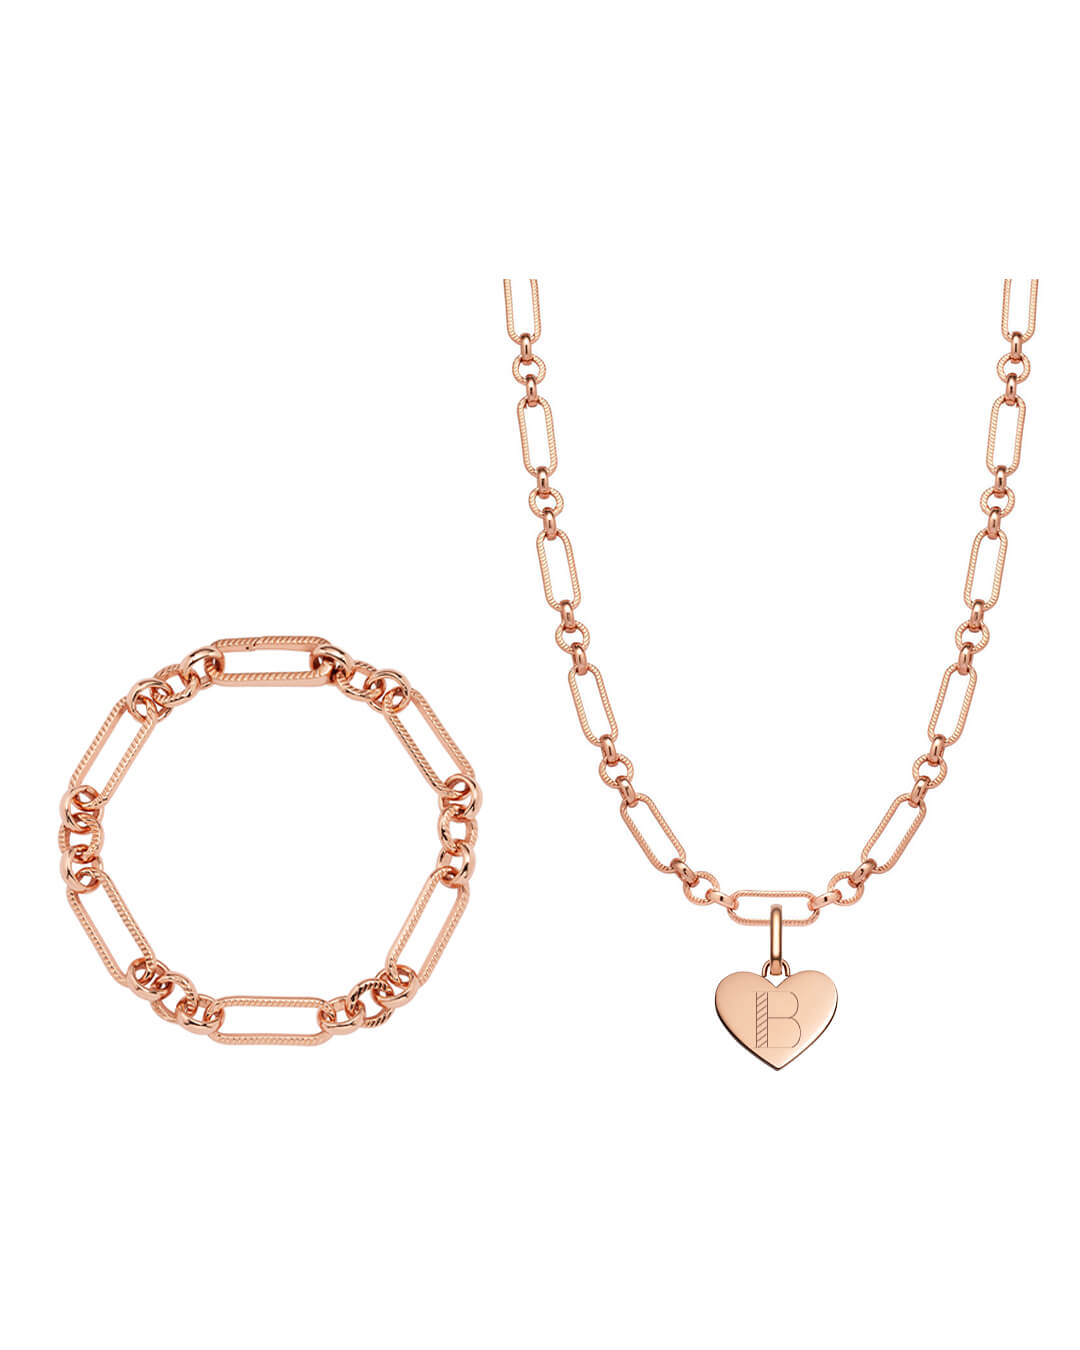 Heart Figaro Chain Necklace & Bracelet Gift Set (Rose Gold)